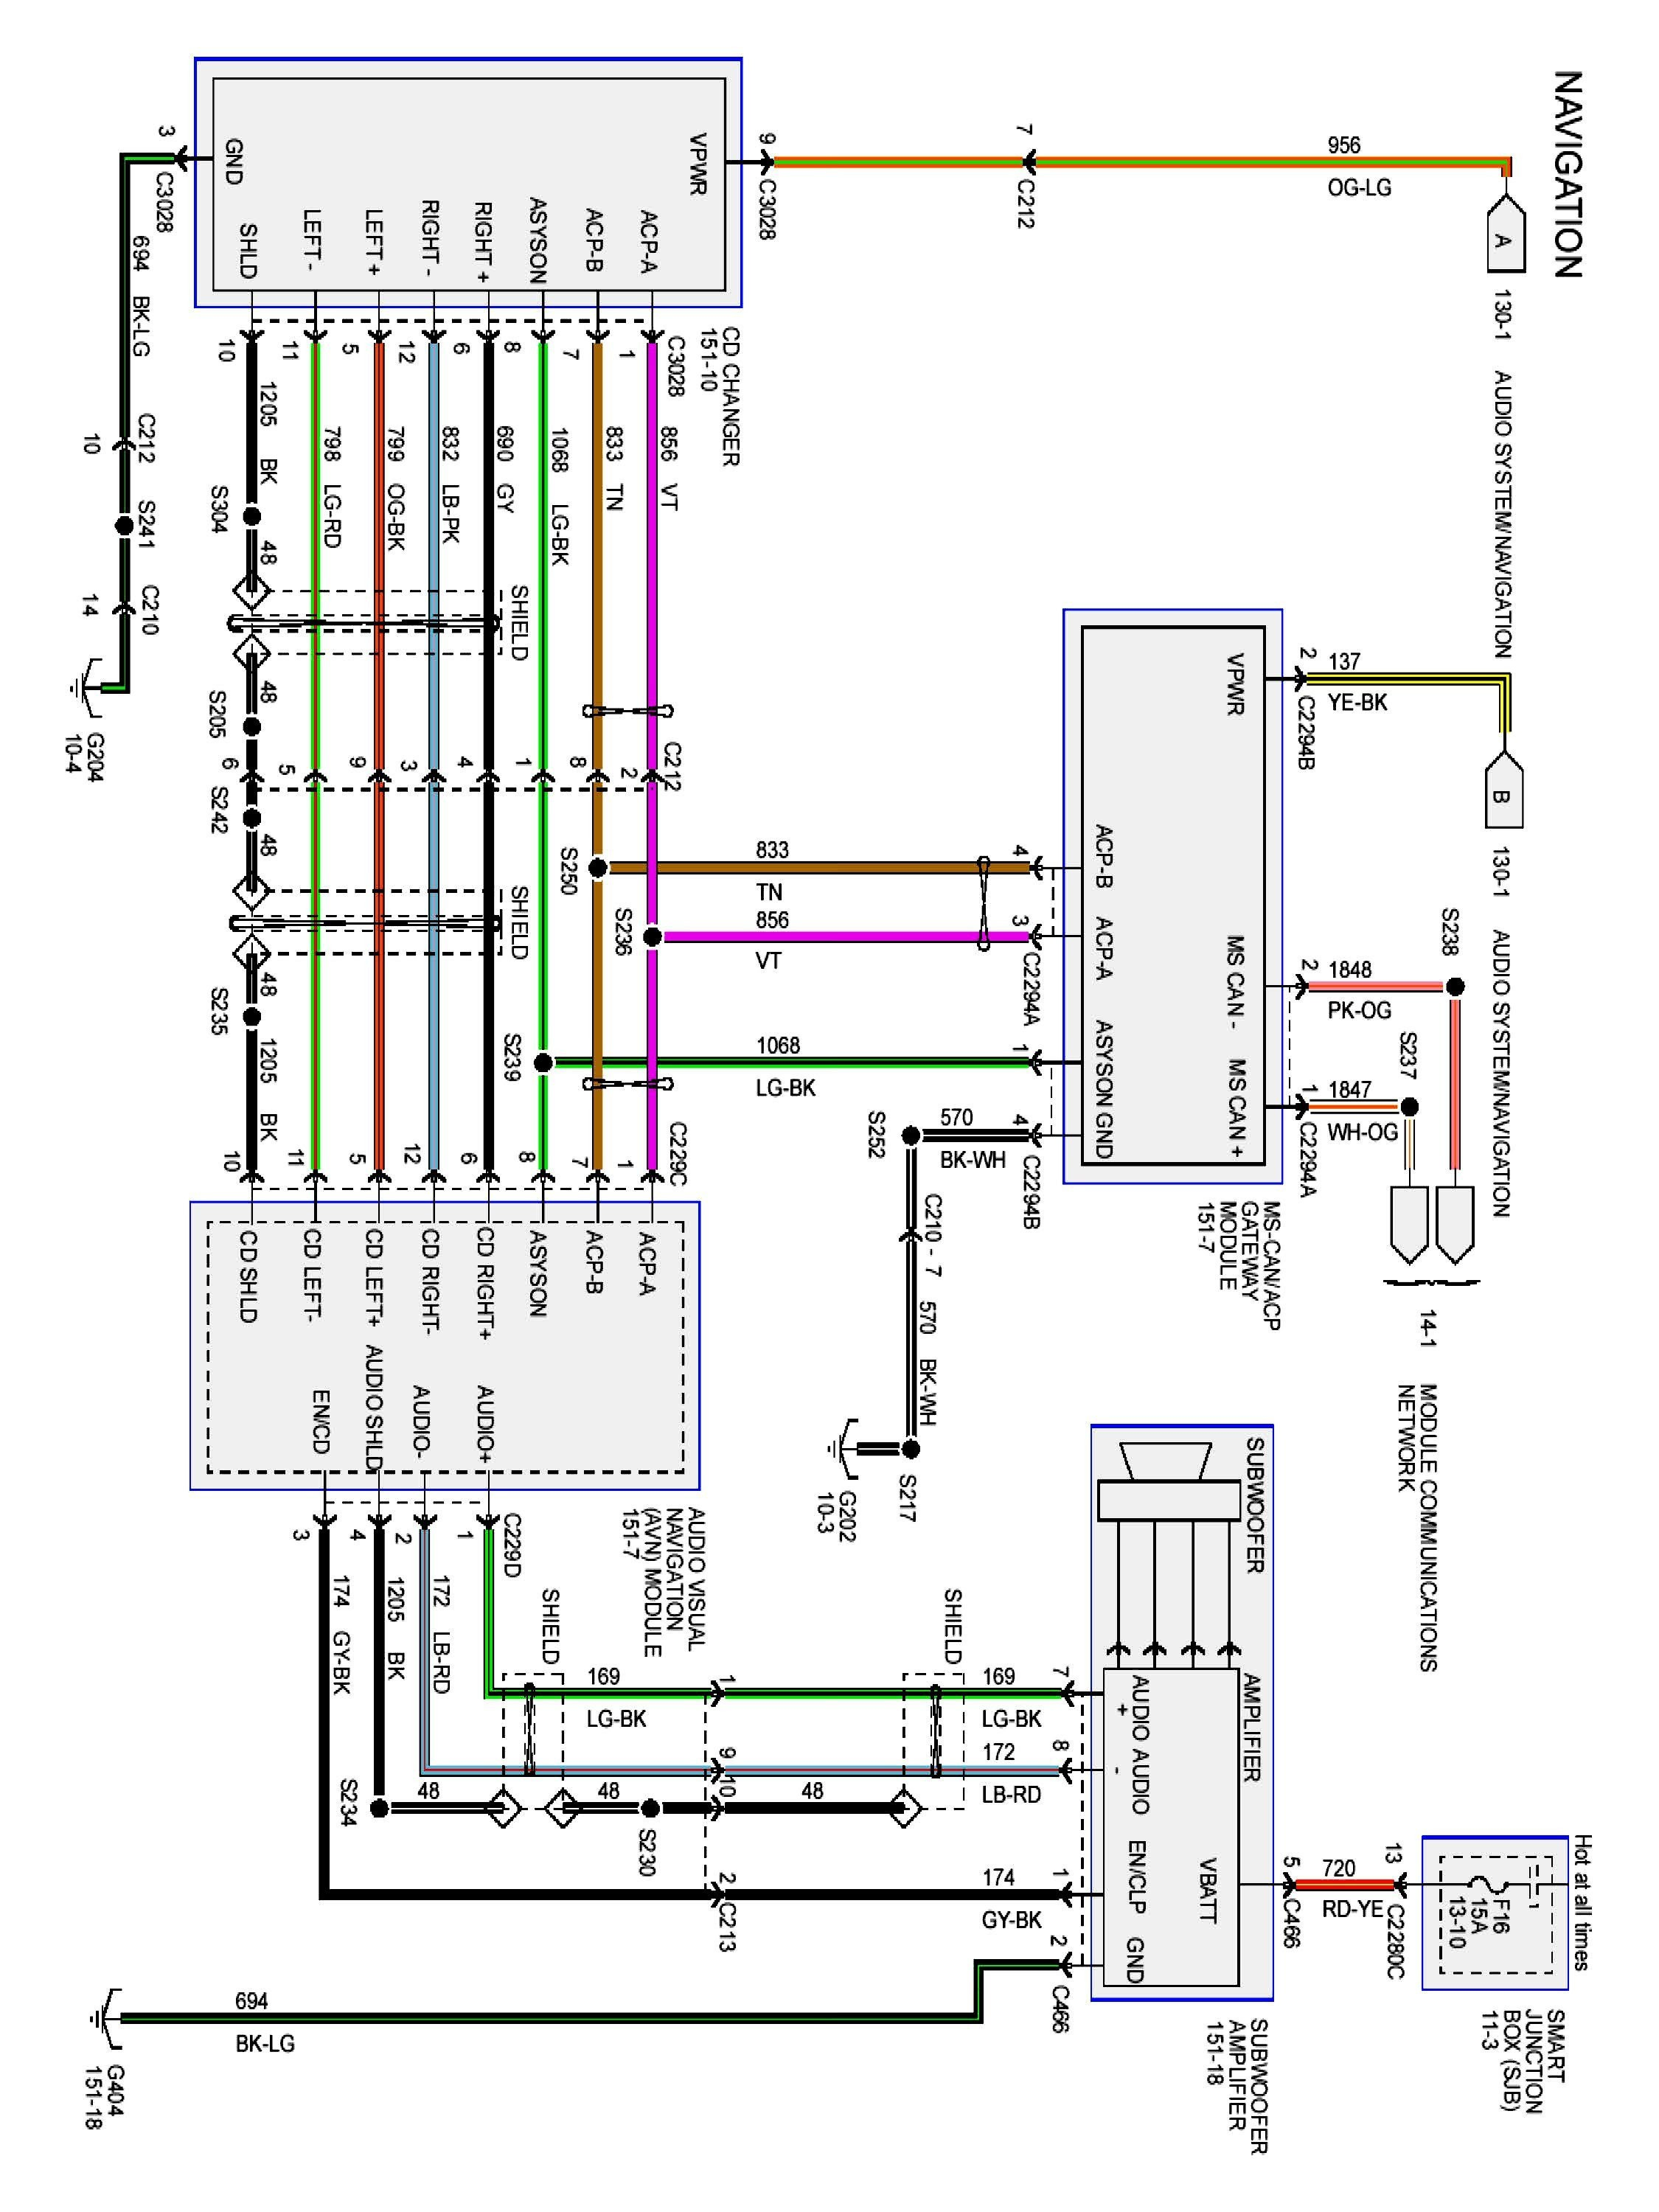 2007 Ford Freestar Radio Wiring Diagram Arduino H Bridge Diagram Begeboy Wiring Diagram Source